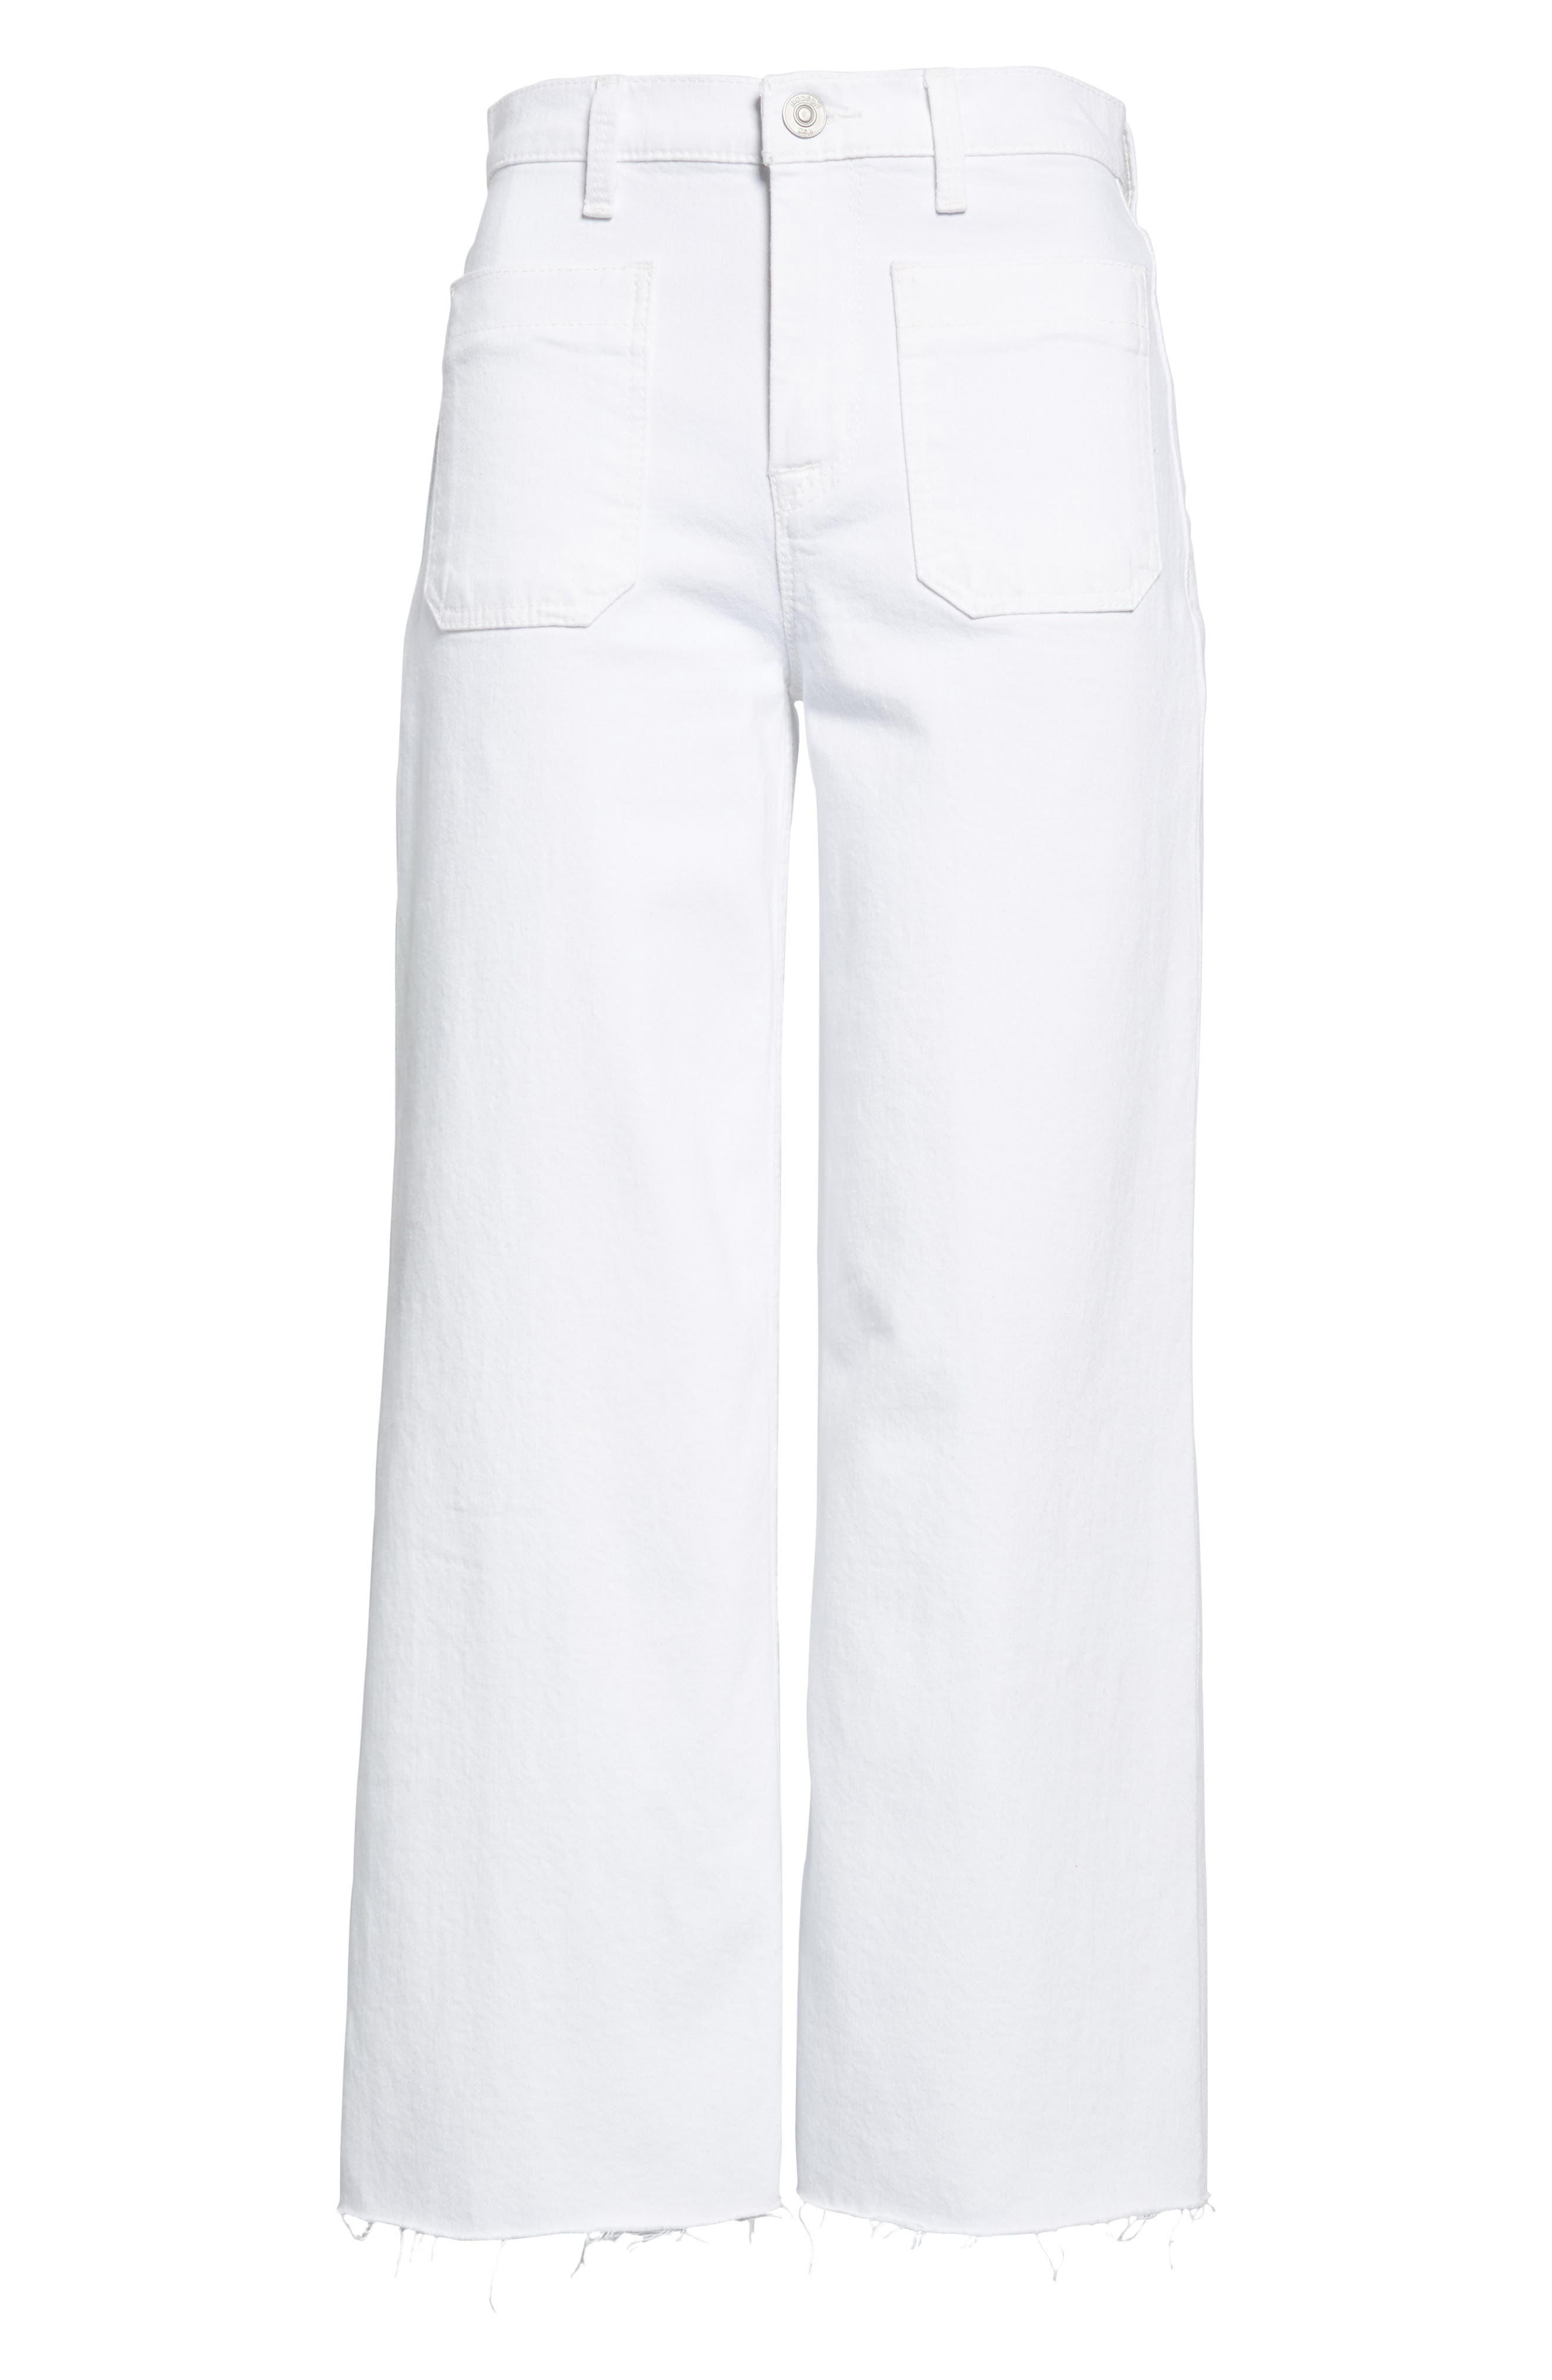 Holly High Waist Raw Hem Crop Wide Leg Jeans,                             Alternate thumbnail 6, color,                             White